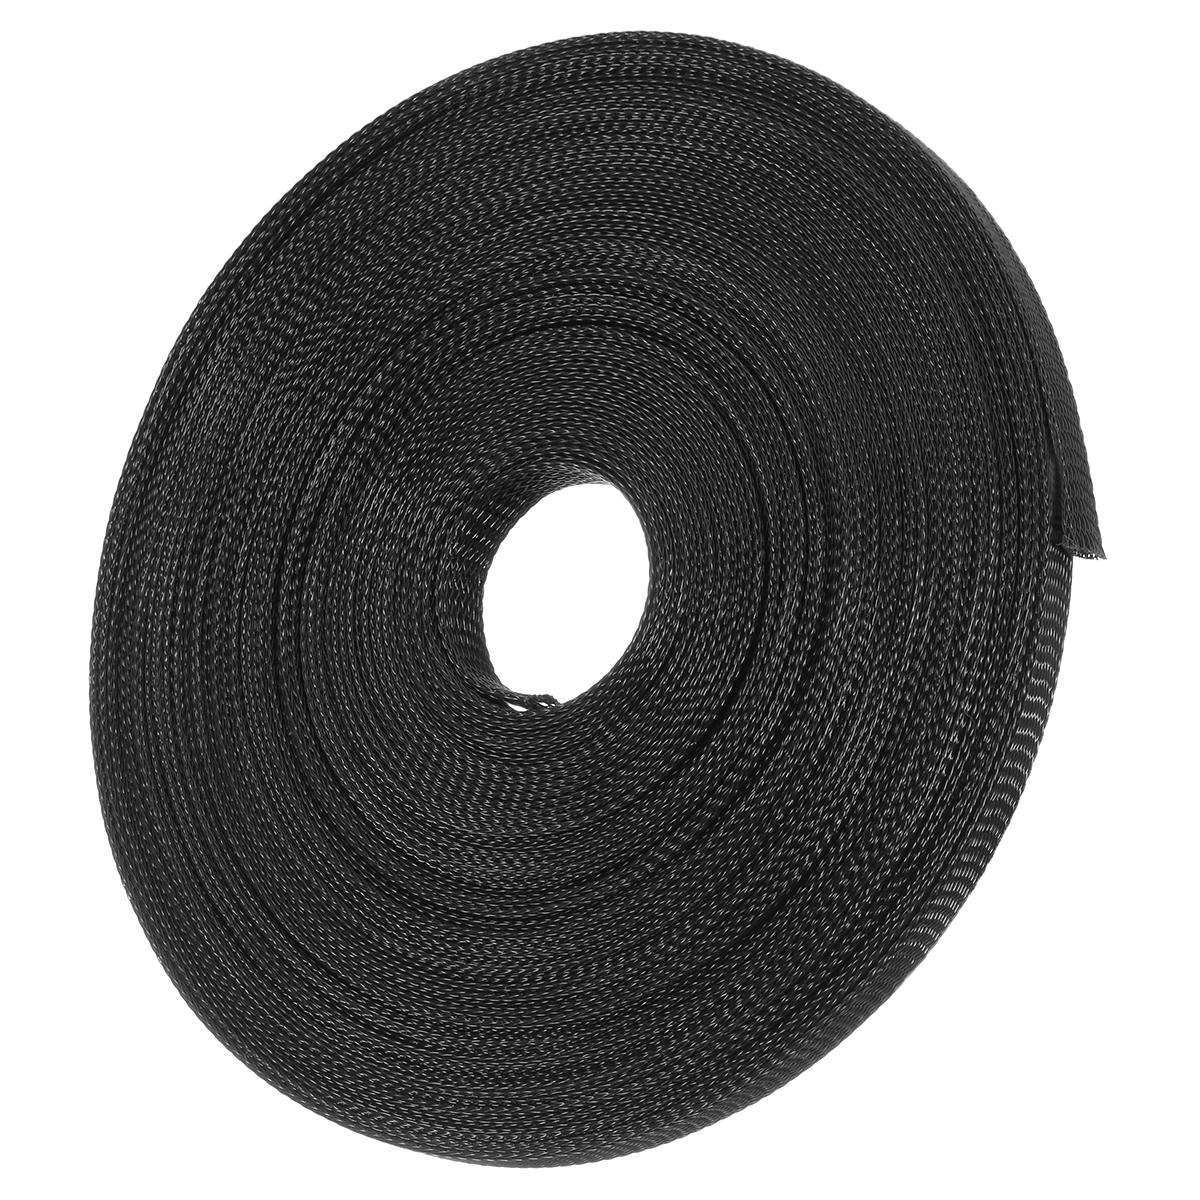 Braided Nylon Wire Loom | 15m 8mm 10mm 12mm 15mm 20mm Expandable Wire Cable Sleeving Sheathing